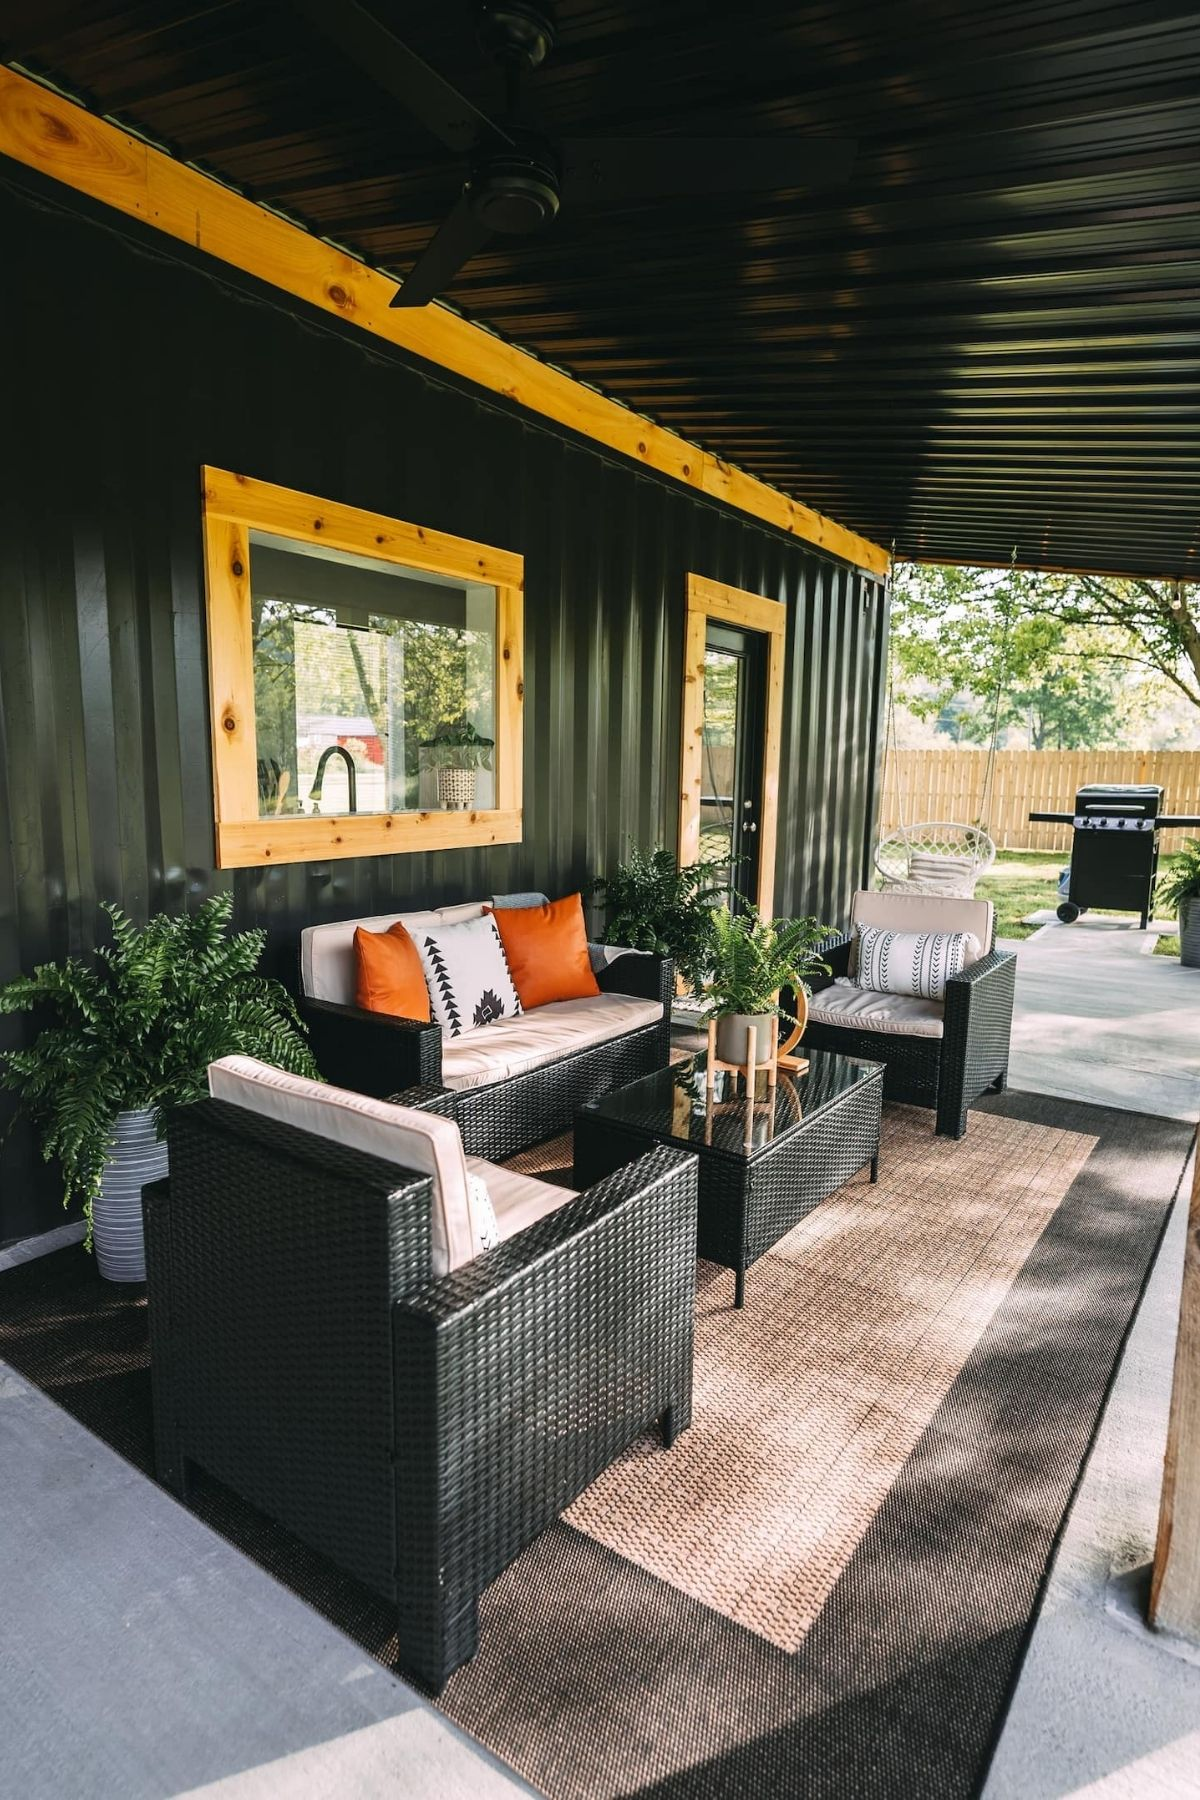 Black outdoor furniture set under awning by wood trimmed window